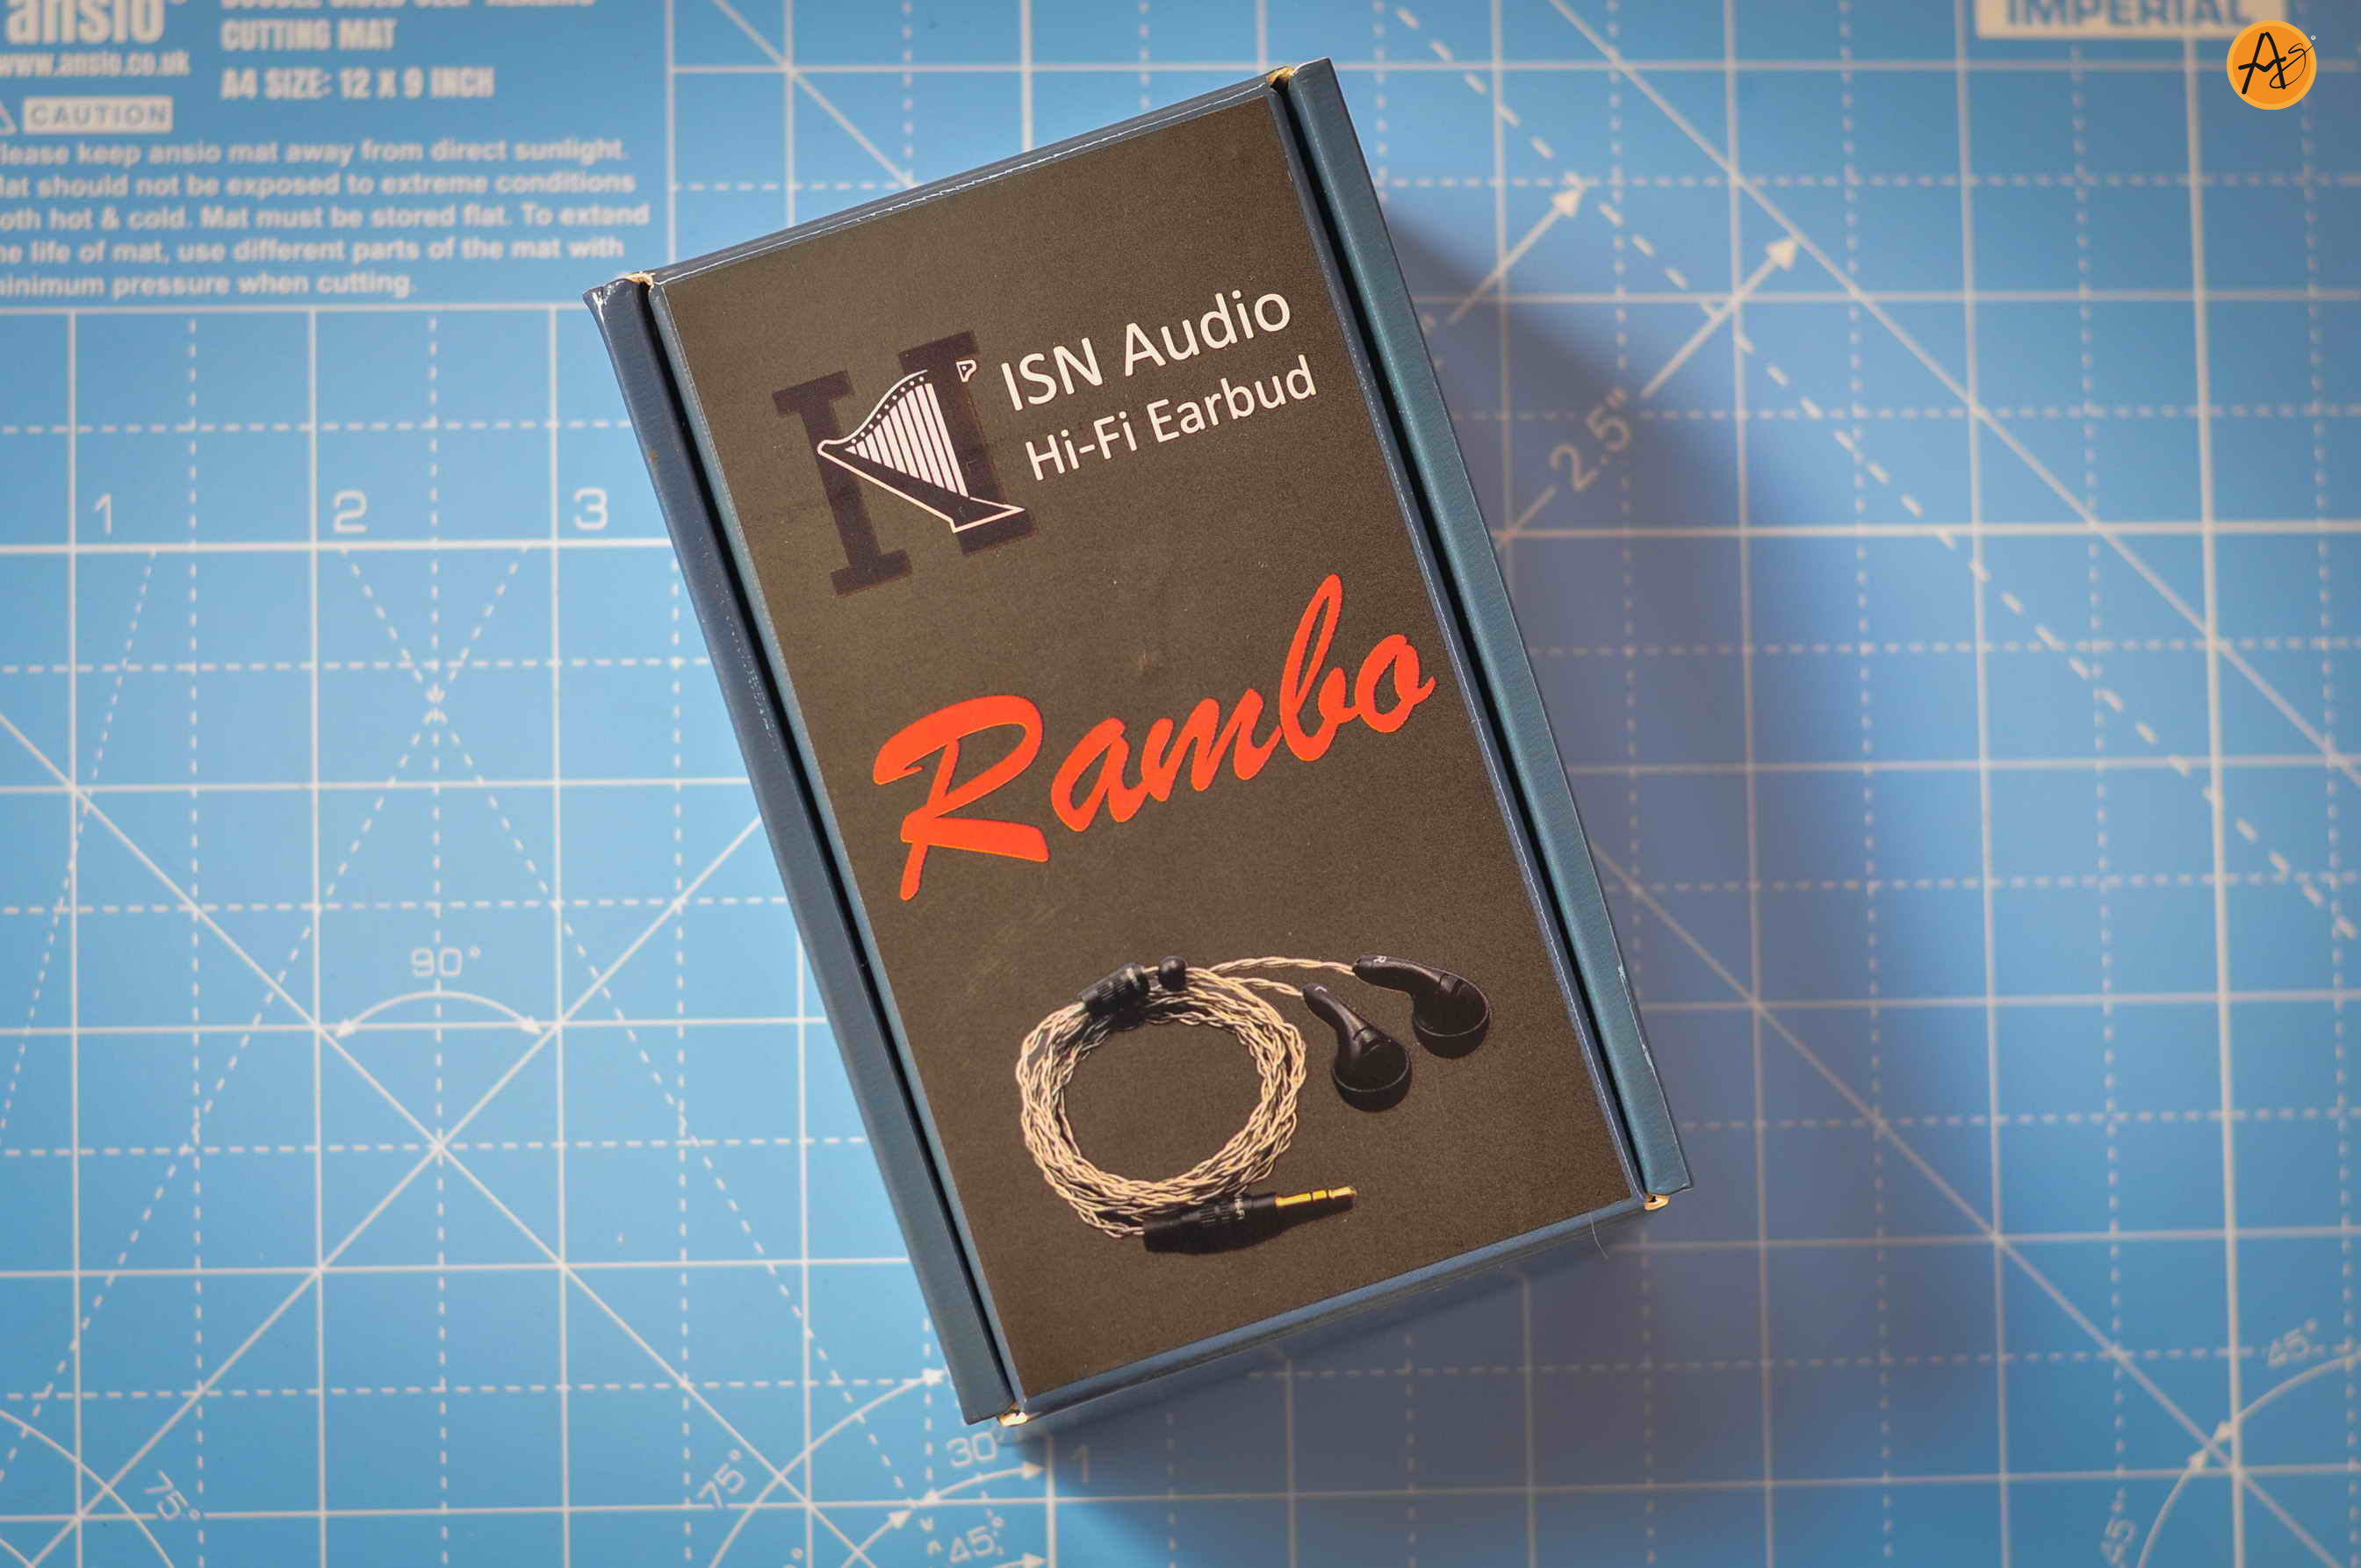 ISN Audio Rambo